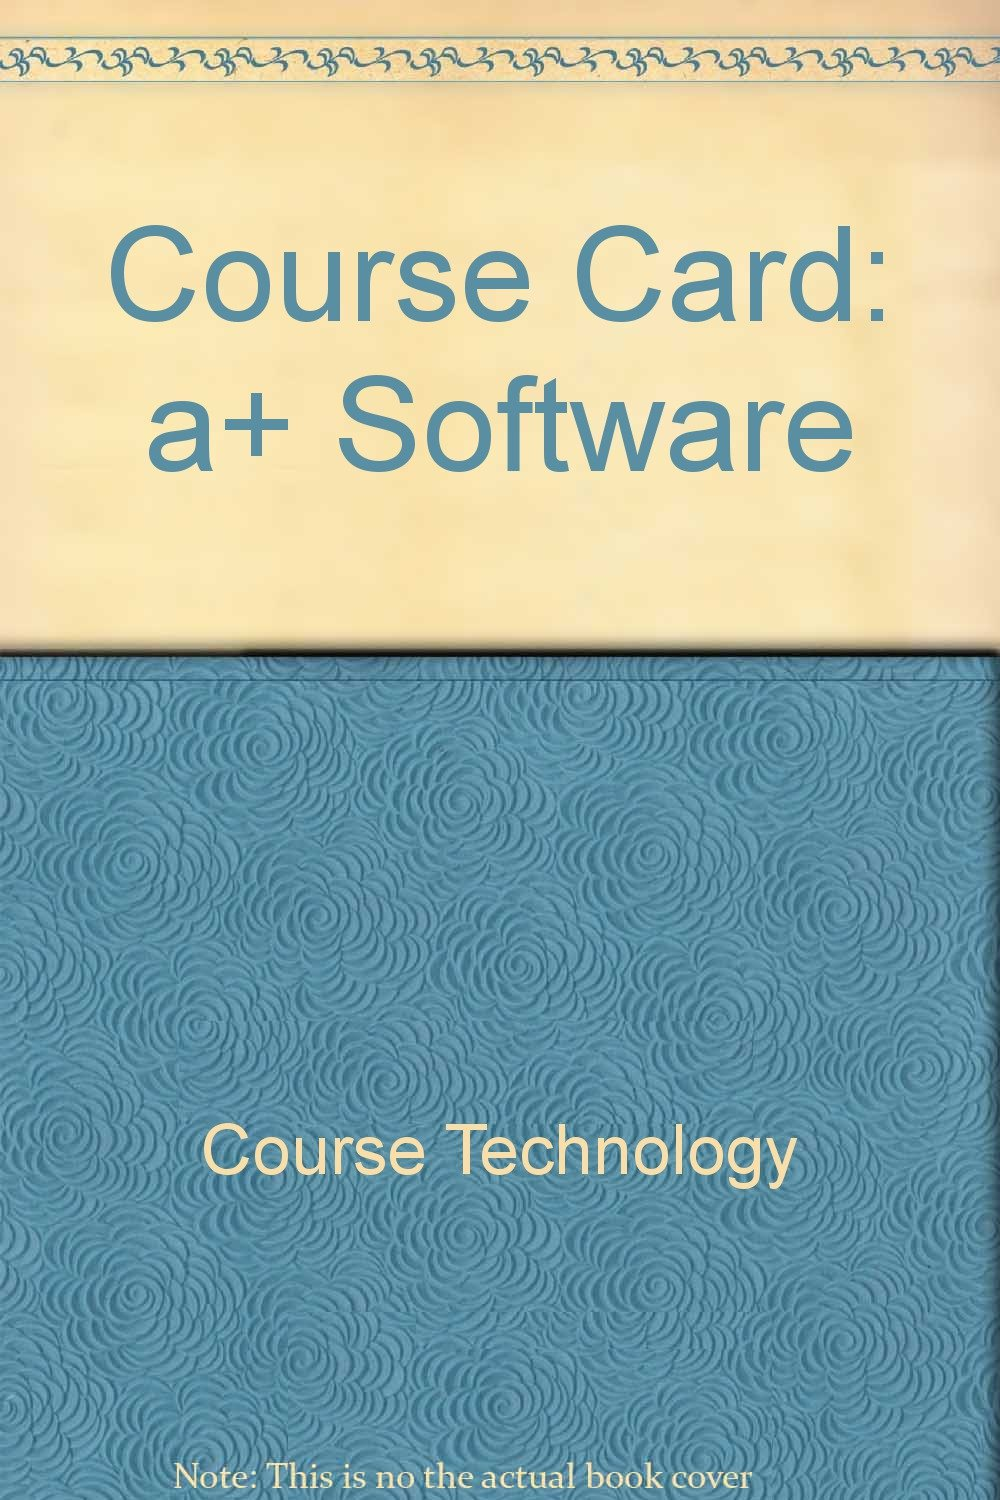 Course ILT: A+ Software CourseCard PDF